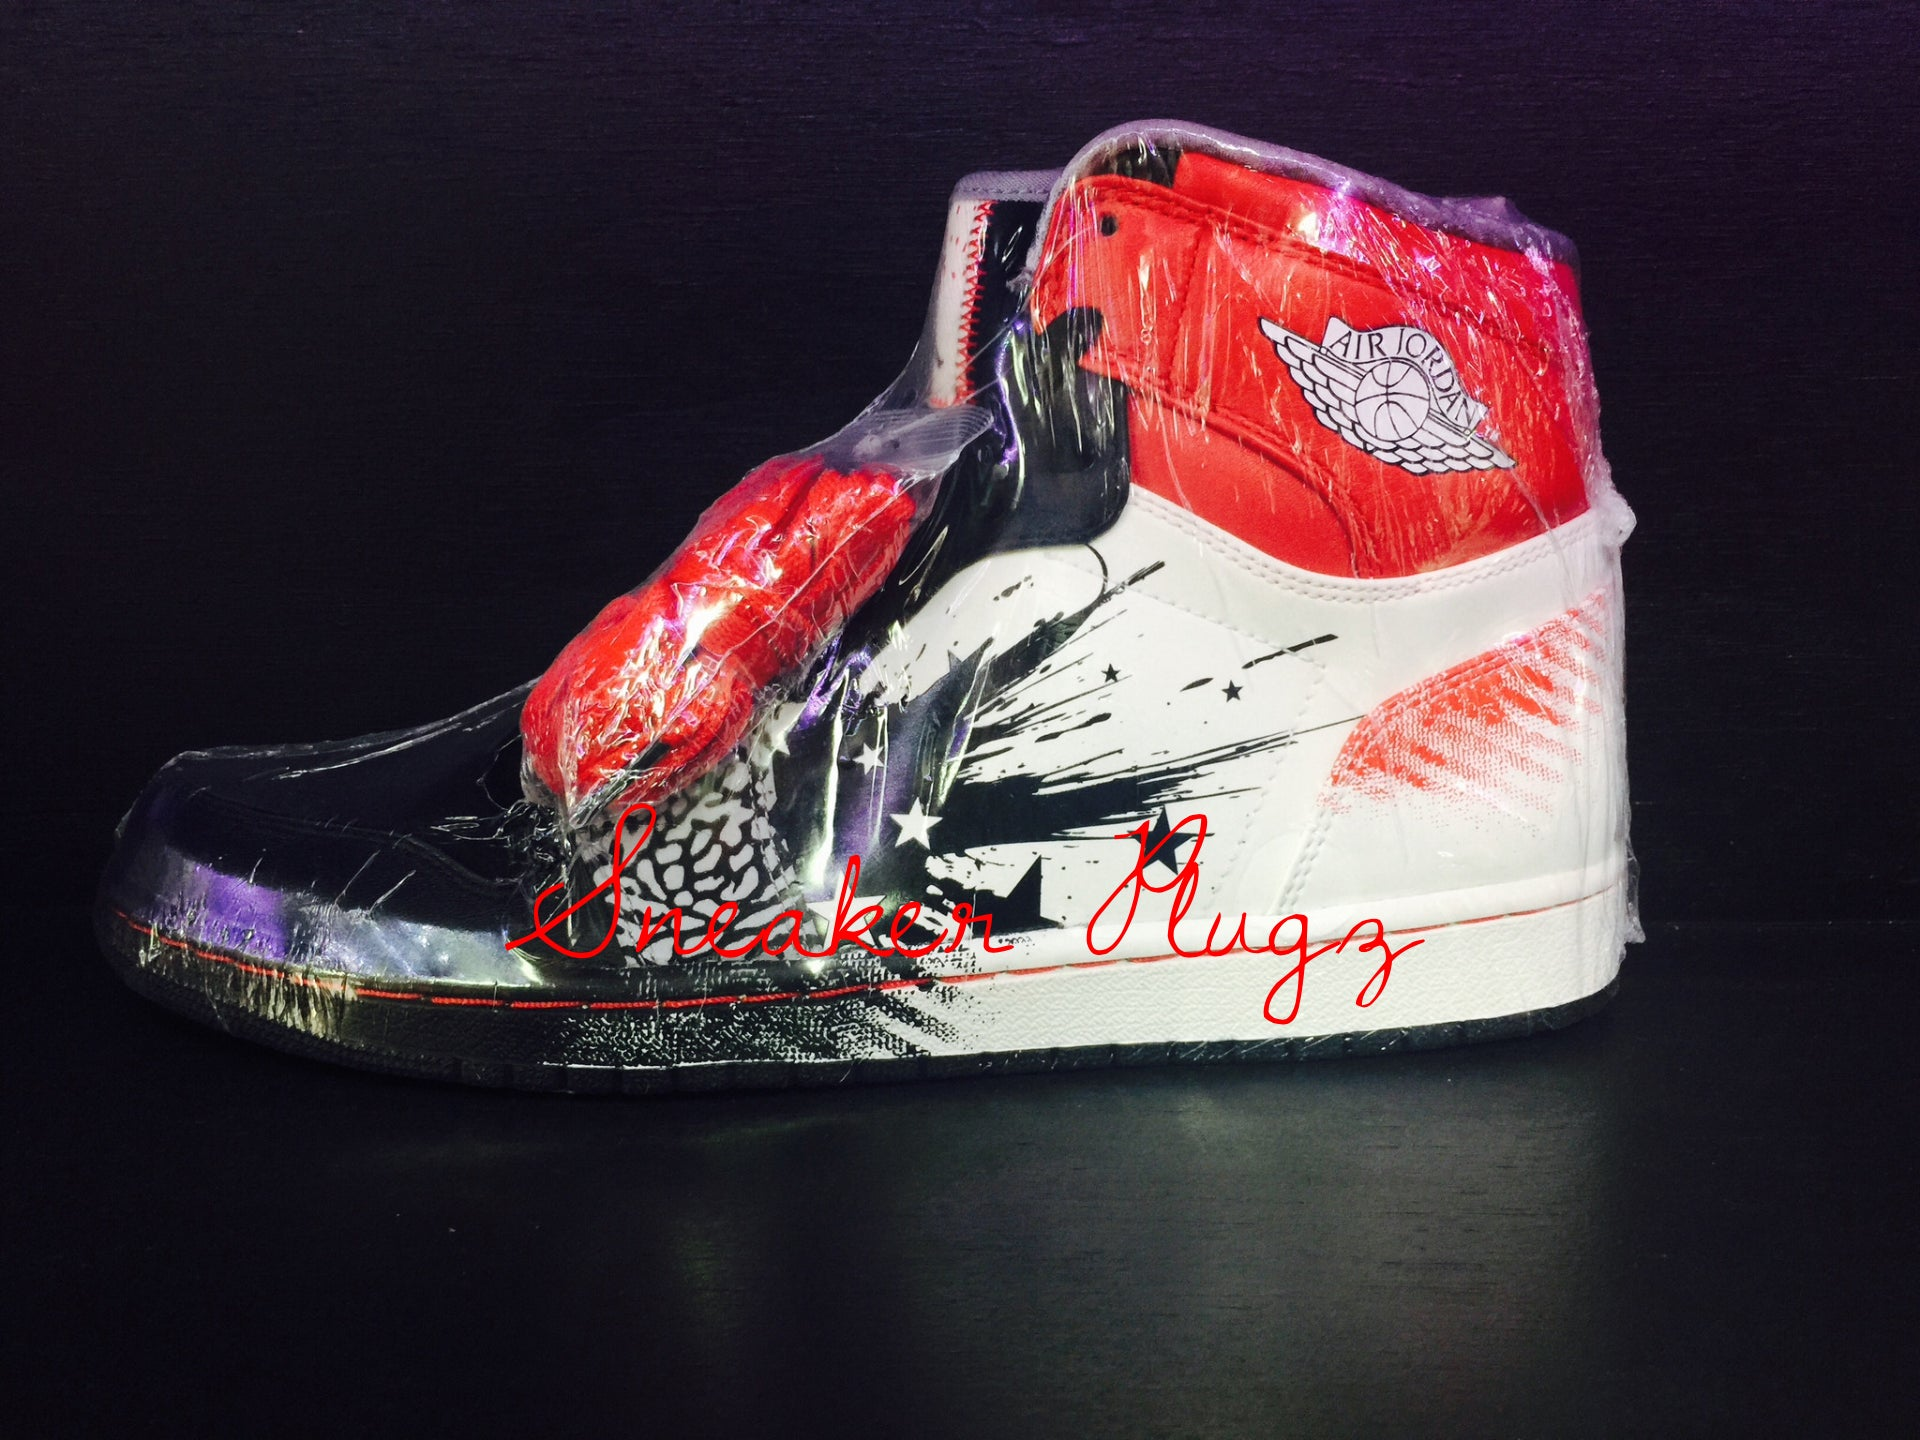 Air Jordan 1 Retro High Dave White 'Wings Of The Future'